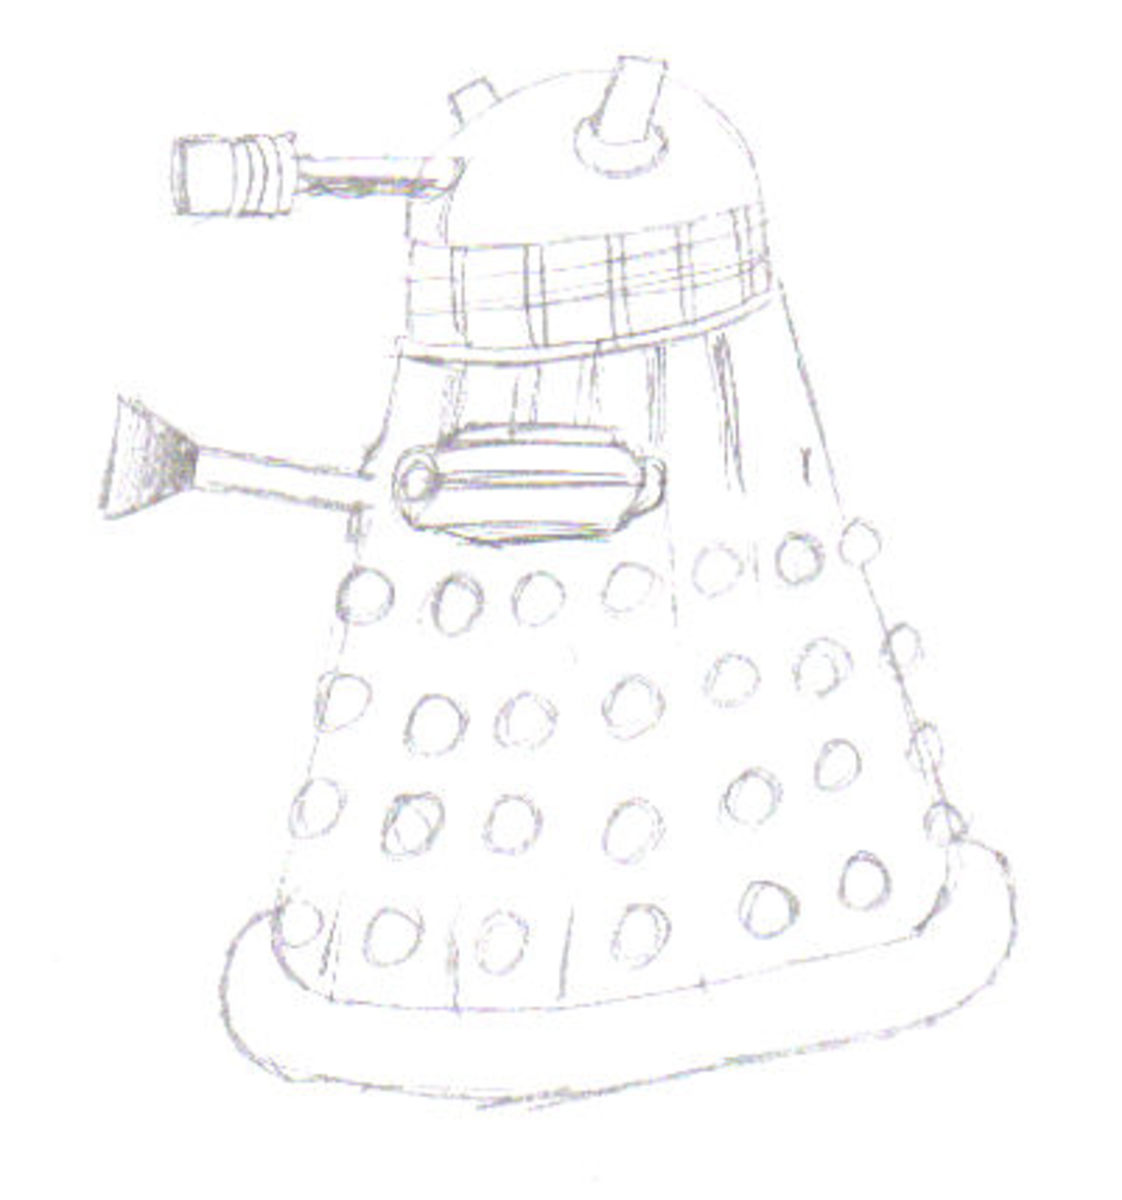 A quick build up of the Dalek drawing.